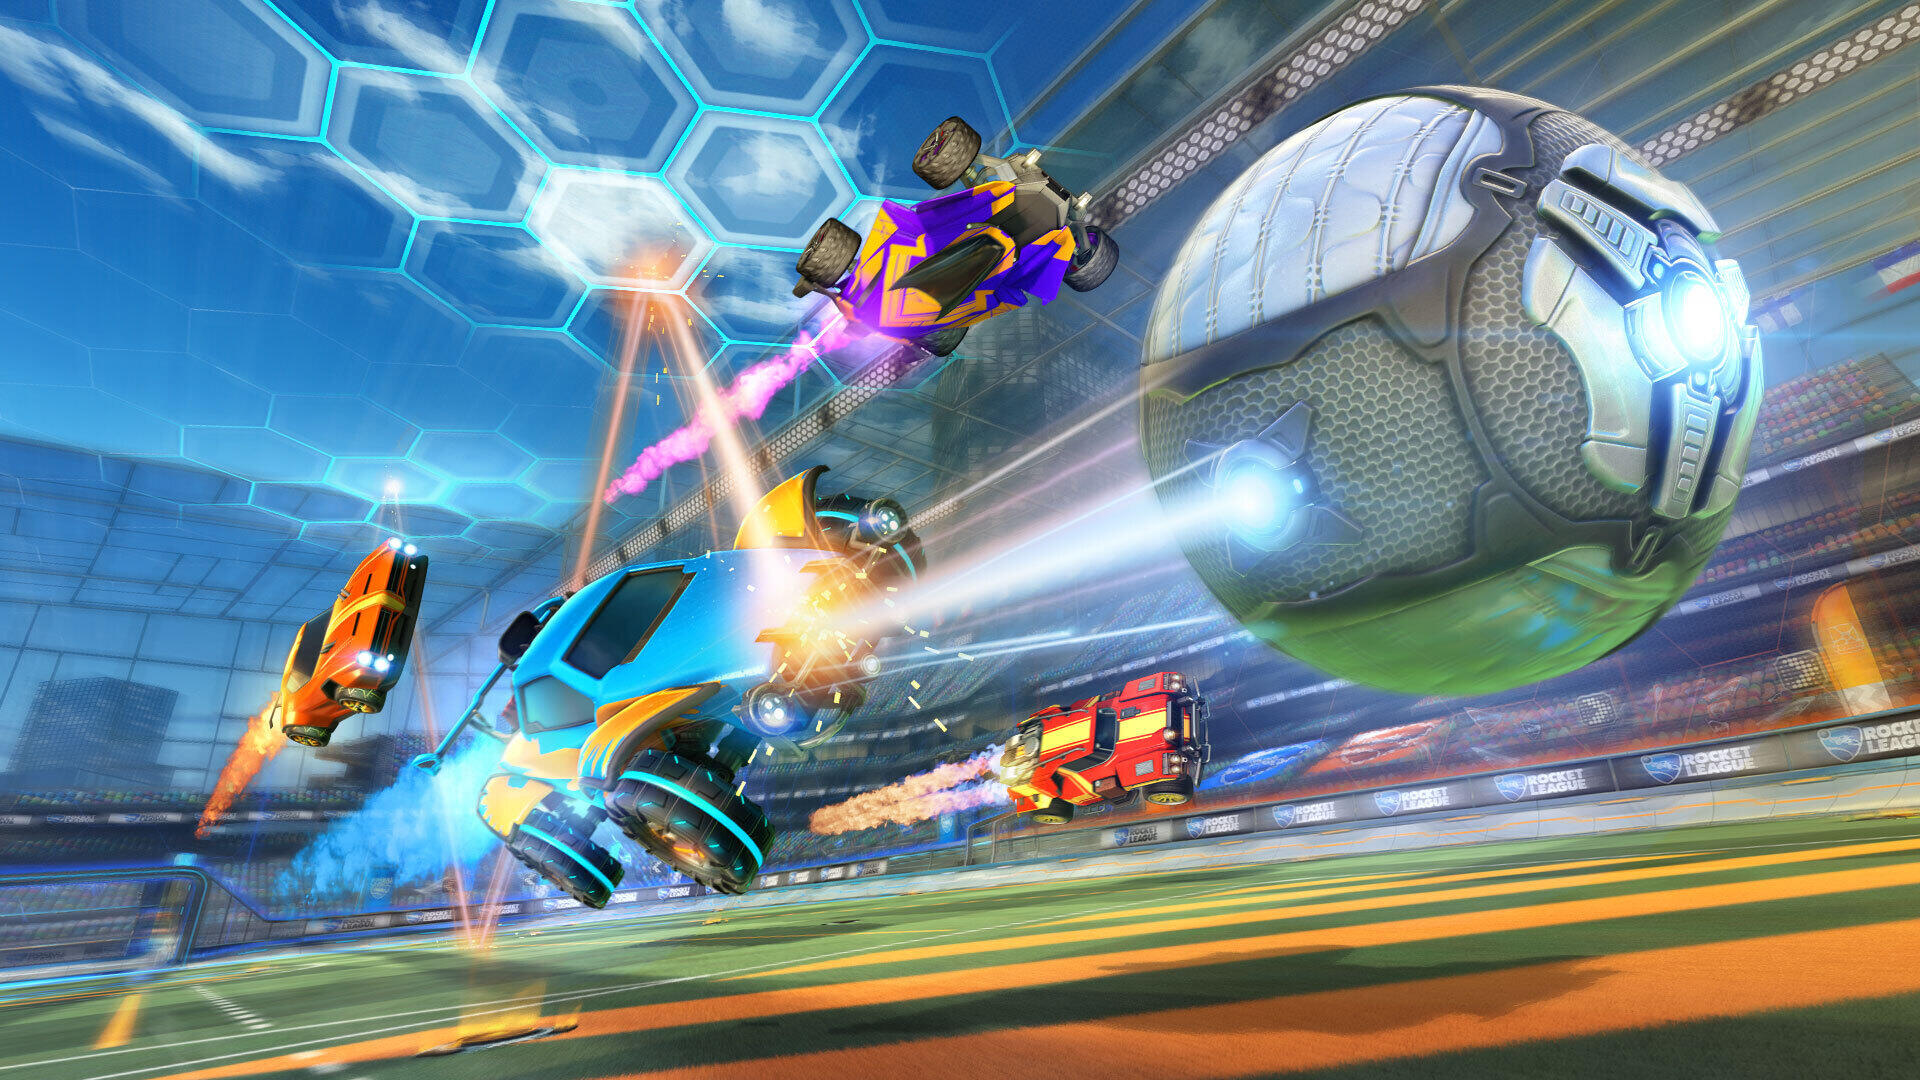 New limited-time Boomer Mode coming to Rocket League tomorrow